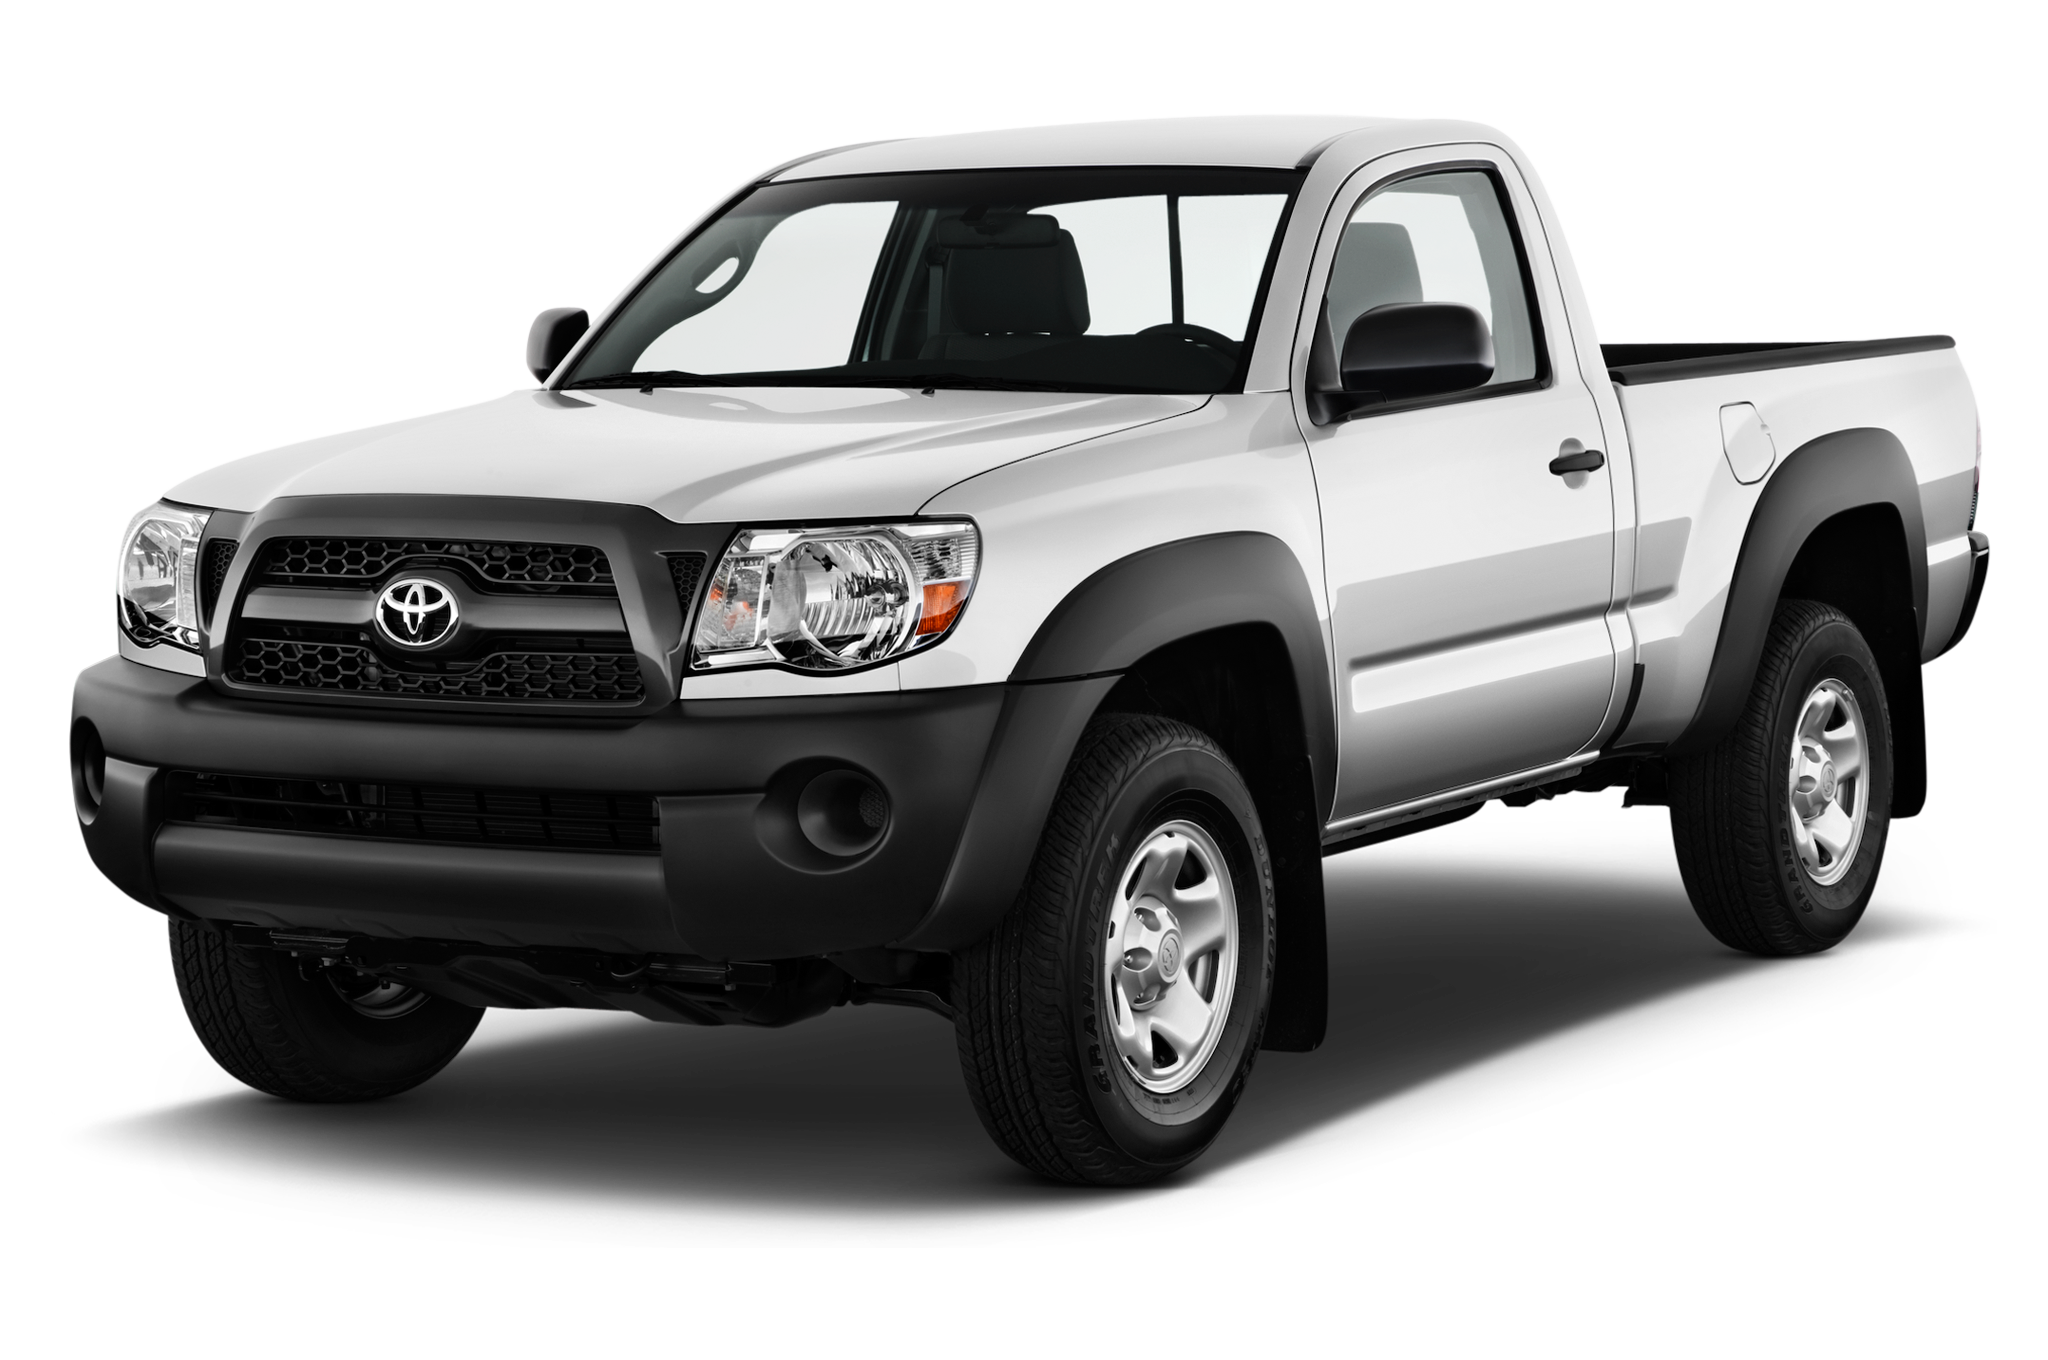 baja california dreamin toyota unveils 2012 tacoma t x baja pickup. Black Bedroom Furniture Sets. Home Design Ideas